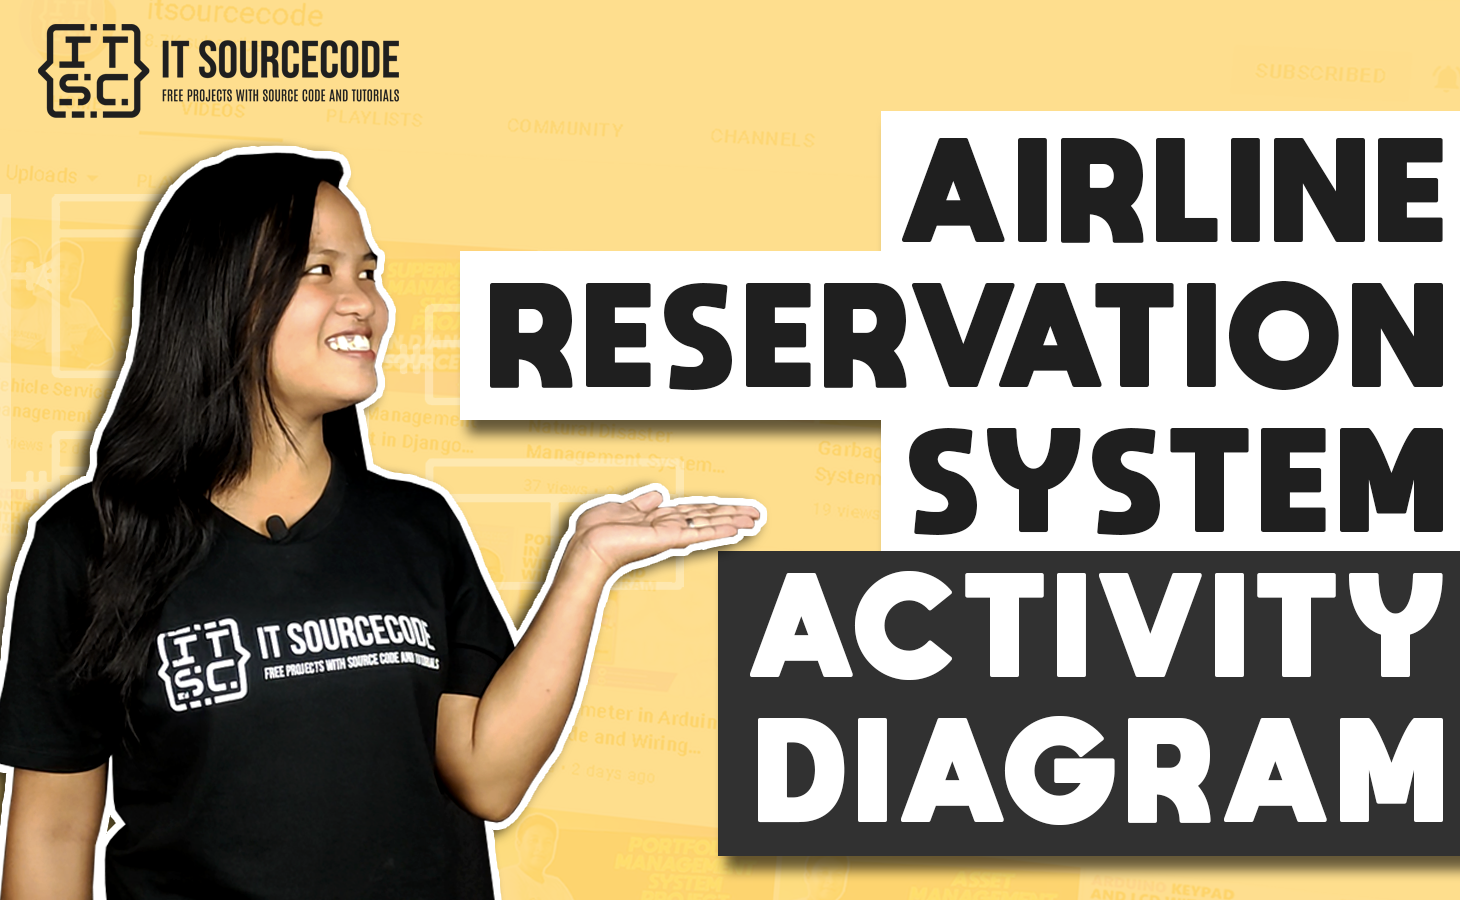 Airline Reservation System Activity Diagram